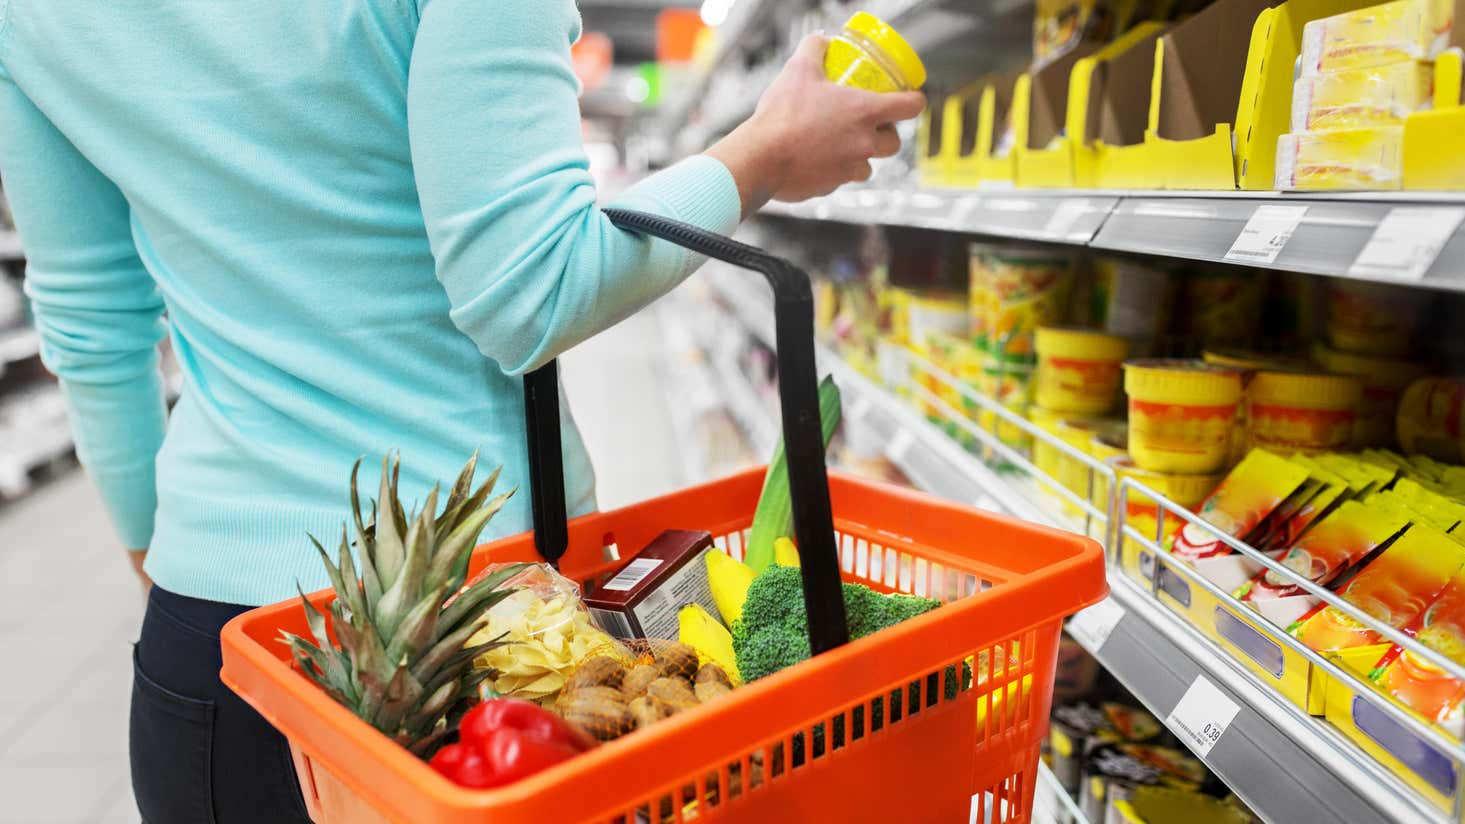 Buy One New-to-You Ingredient Whenever You Grocery Shop